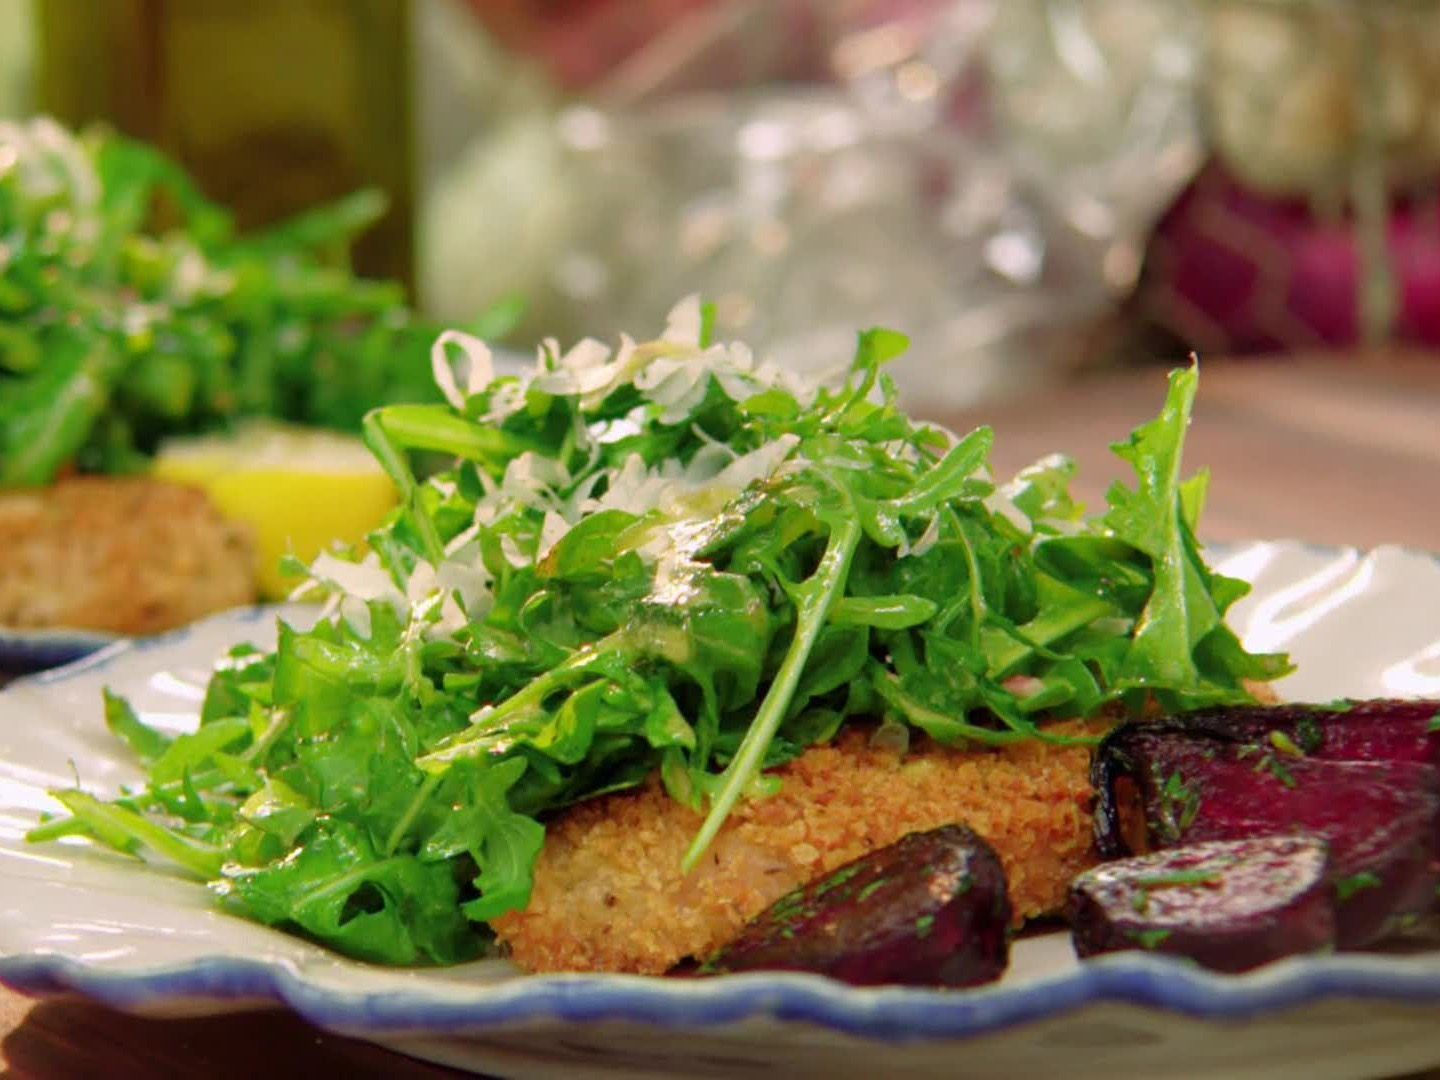 Chicken cutlets with spicy arugula recipe arugula recipes chicken cutlets with spicy arugula recipe from valerie bertinelli via food network forumfinder Images